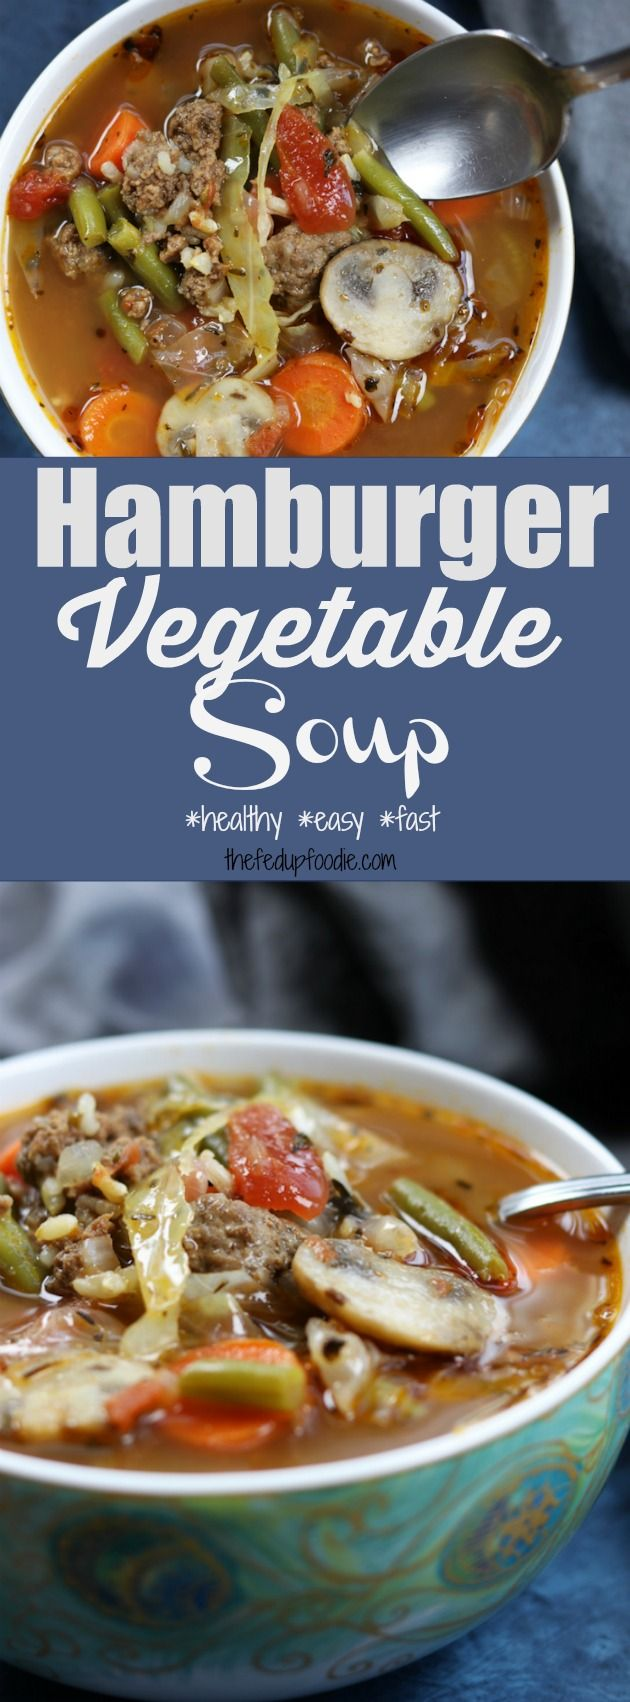 Hamburger Vegetable Soup recipe is warm, satisfying and full of healthy veggies. With just a few steps and simple ingredients it is the best easy meal for chilly nights. Hearty, crock pot, slow cooker, skinny, diet, quick, homemade, gluten-free, ground hamburger, beef, cabbage, tomatoes and beef broth. https://www.thefedupfoodie.com